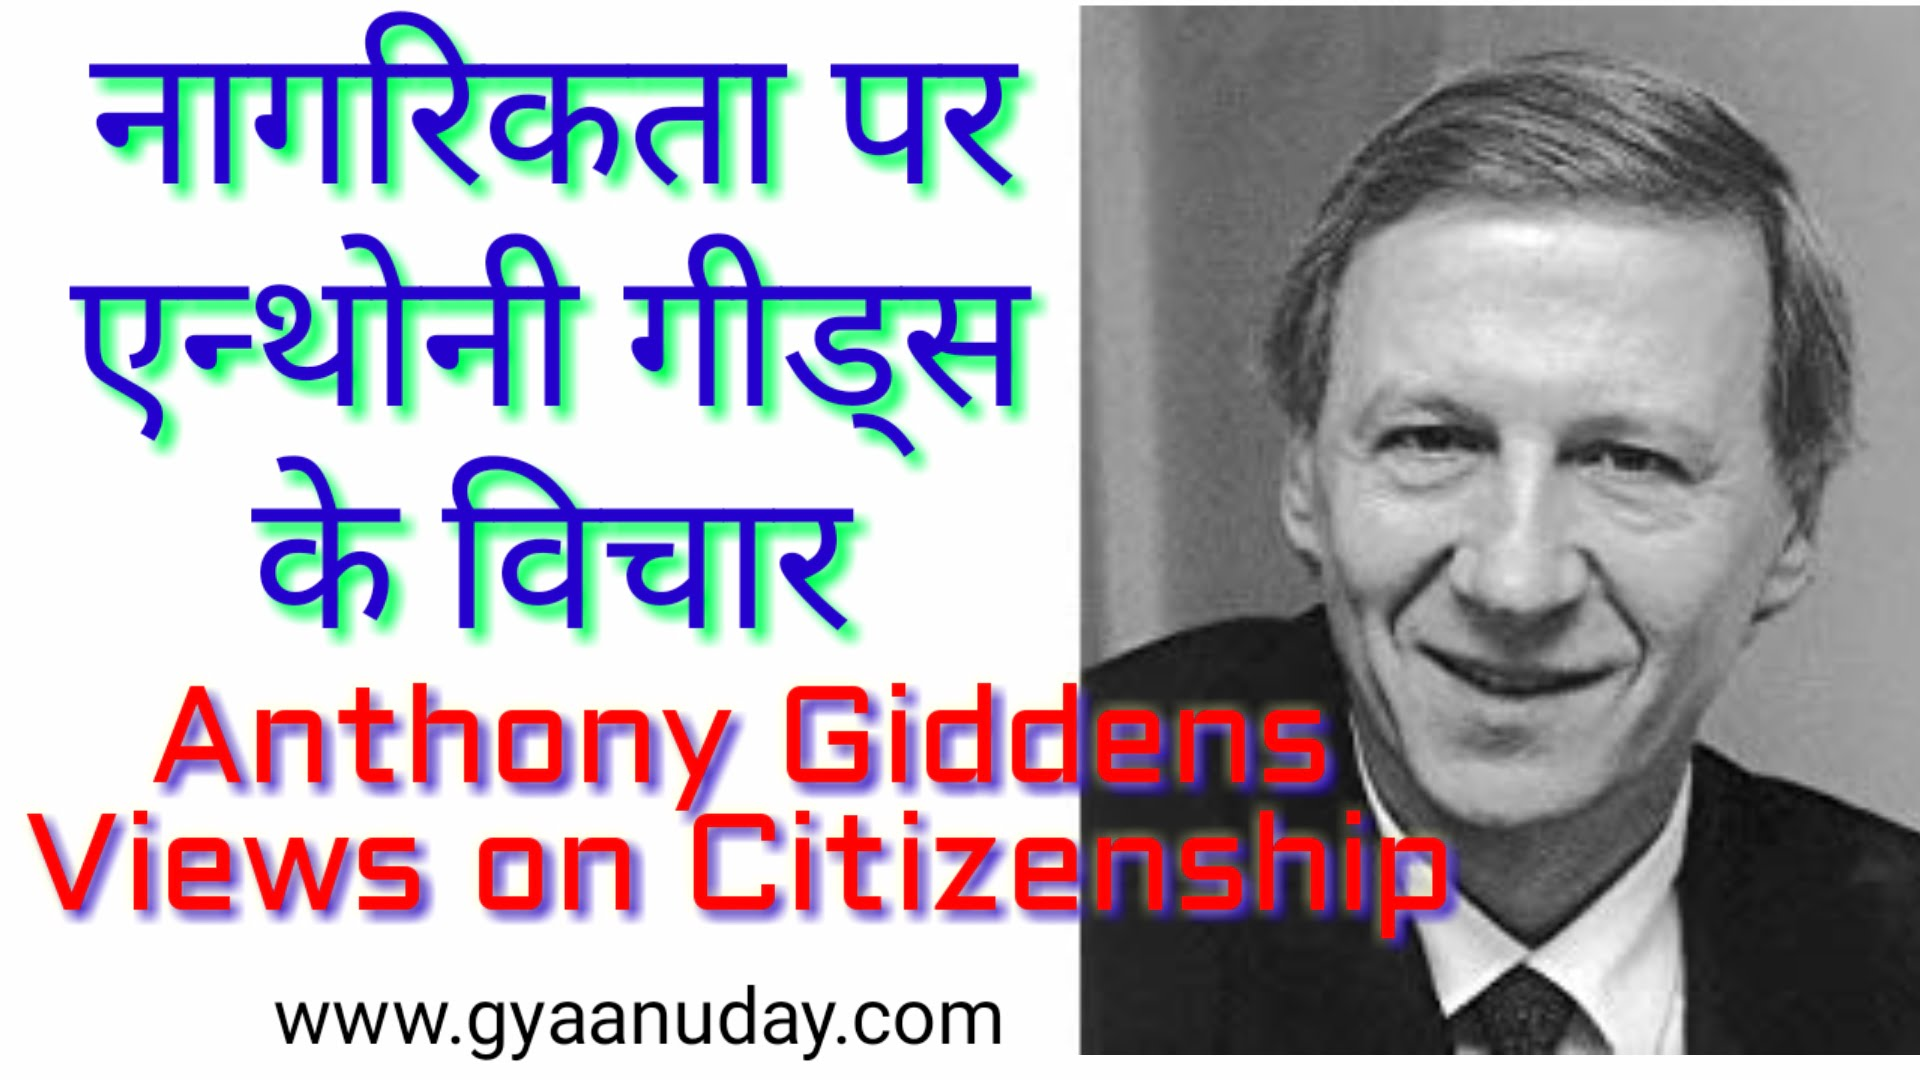 Theory of Citizenship by Anthony Gidden